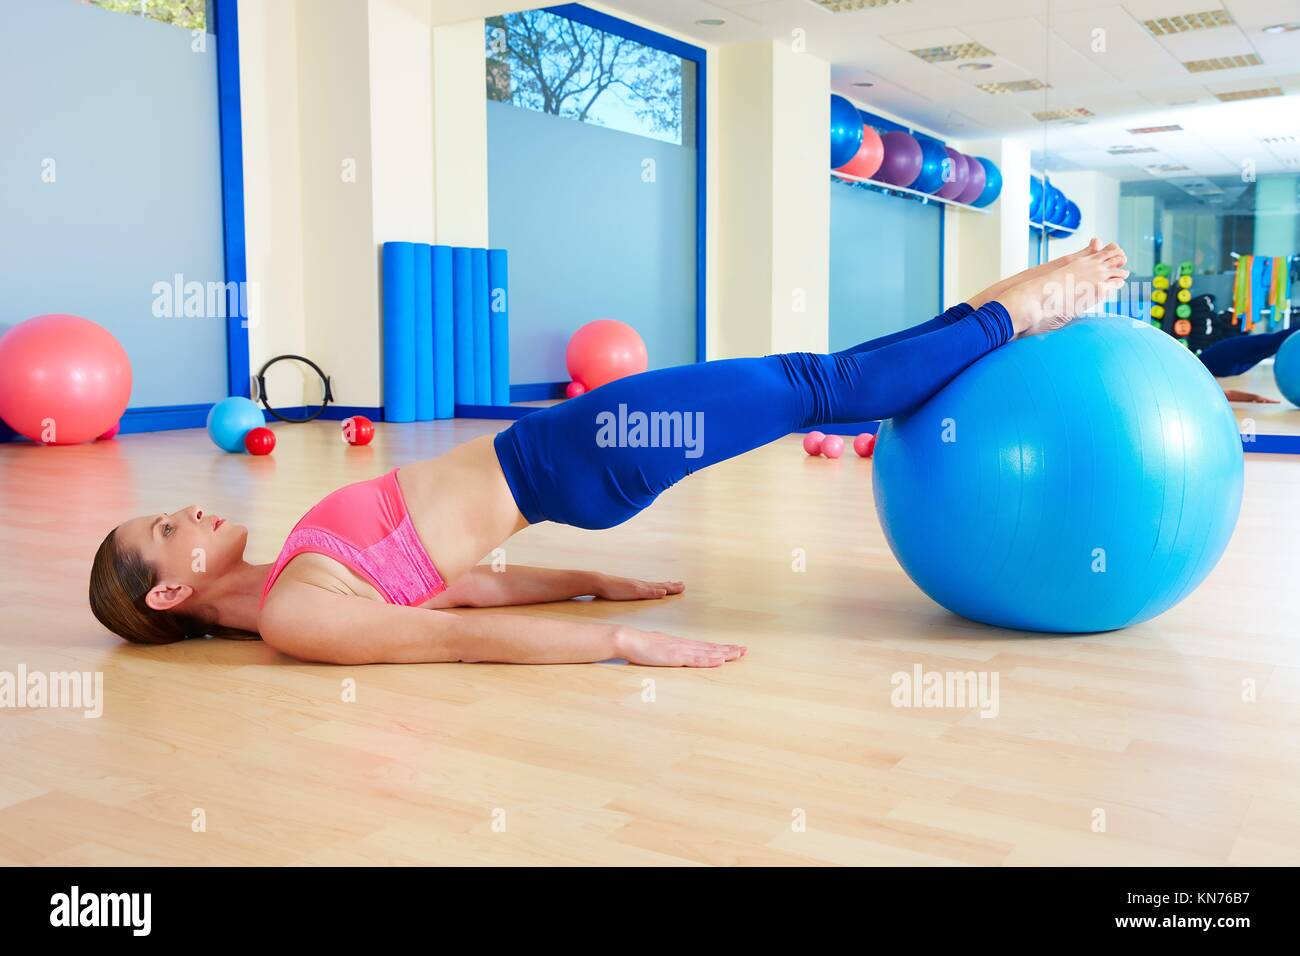 Pilates woman pelvic lift fitball exercise workout at gym indoor swiss ball. - Stock Image